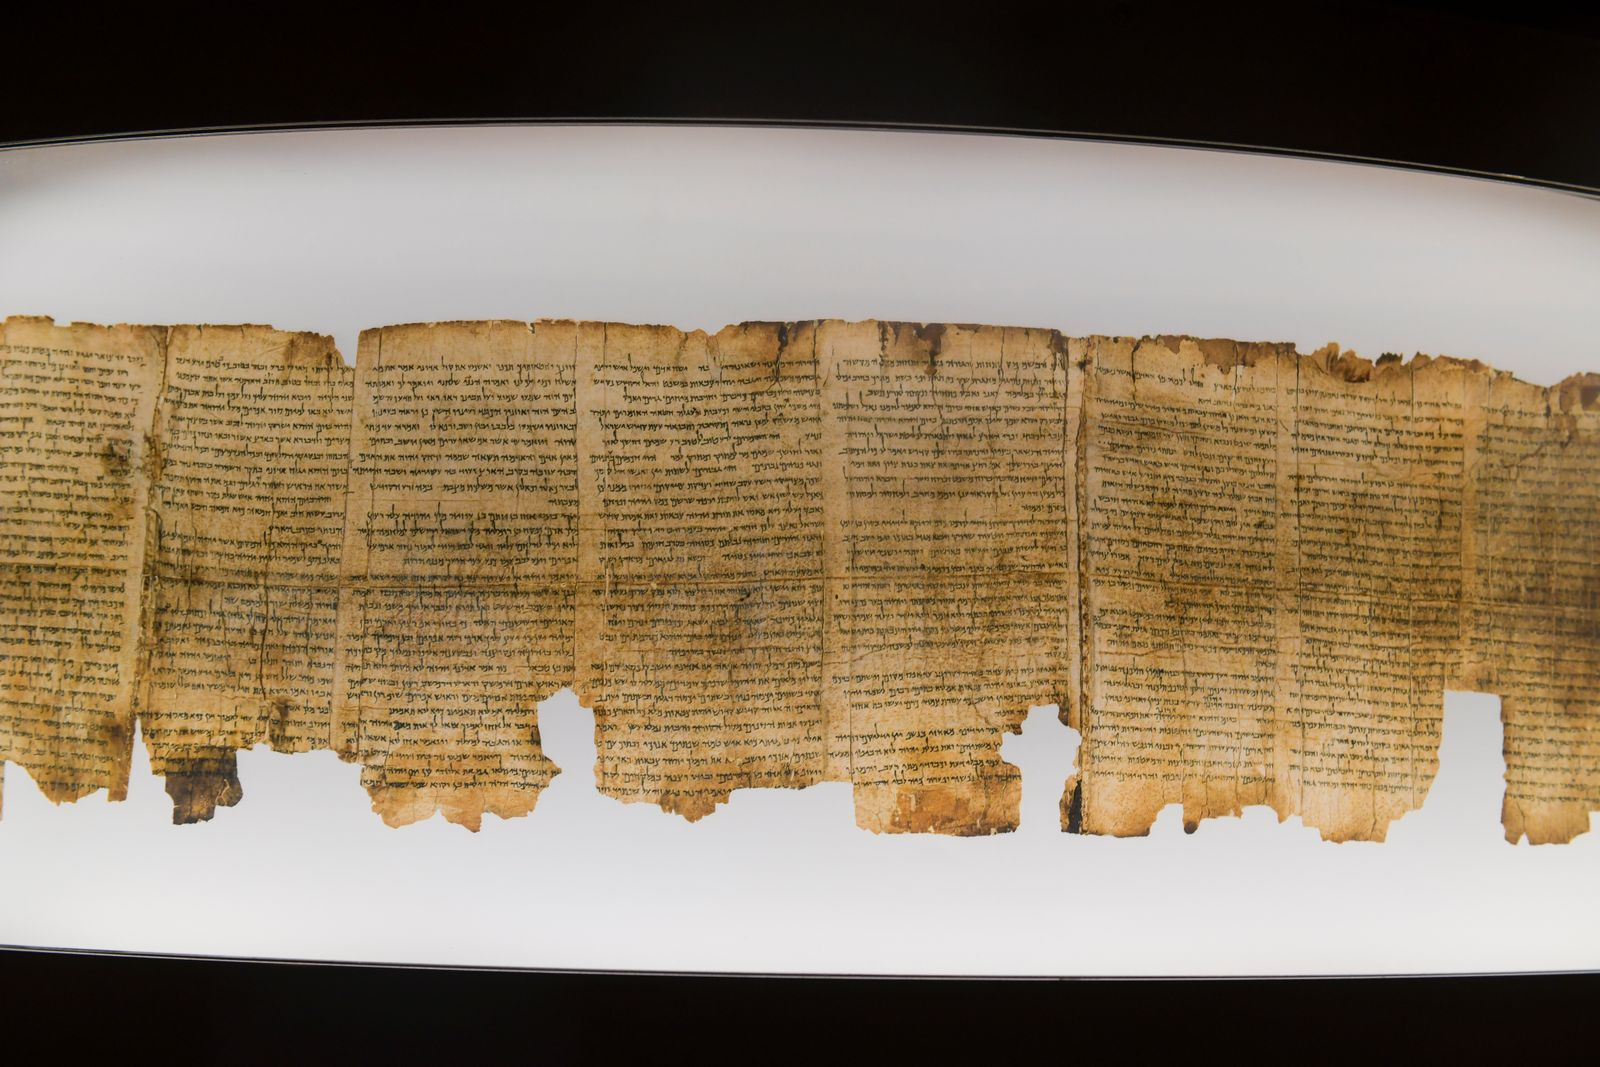 Schriftrollen, Schrein des Buches, Israel-Museum, Jerusalem, Israel *** Scrolls, Shrine of the Book, Israel Museum, Jeru